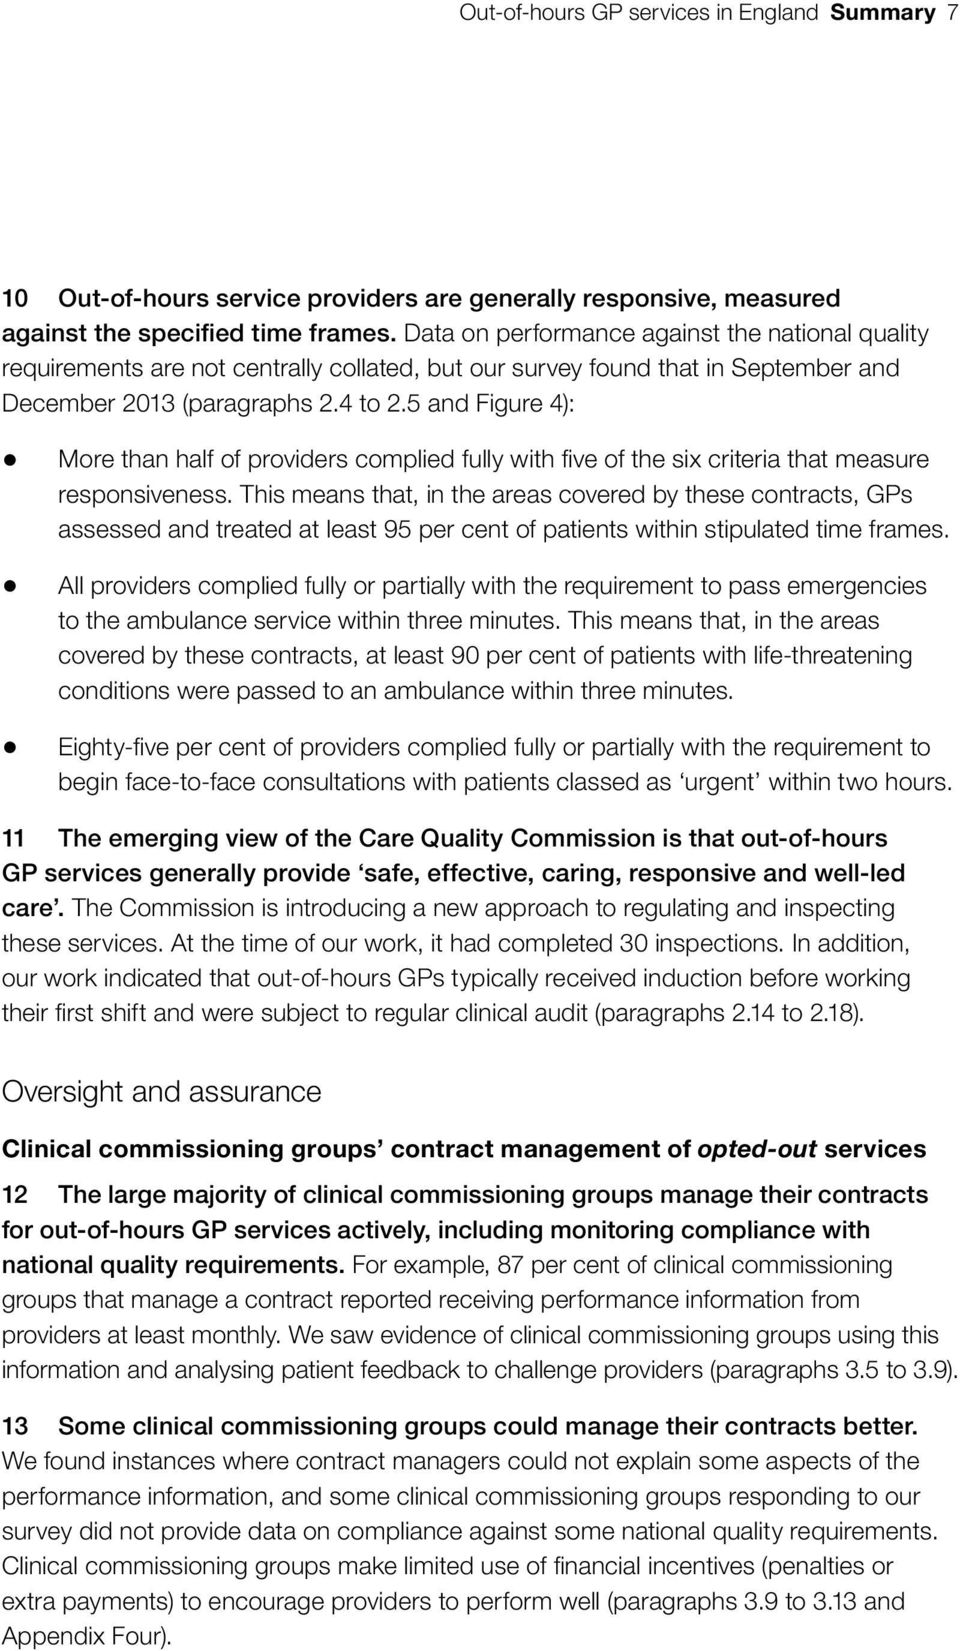 5 and Figure 4): More than half of providers complied fully with five of the six criteria that measure responsiveness.